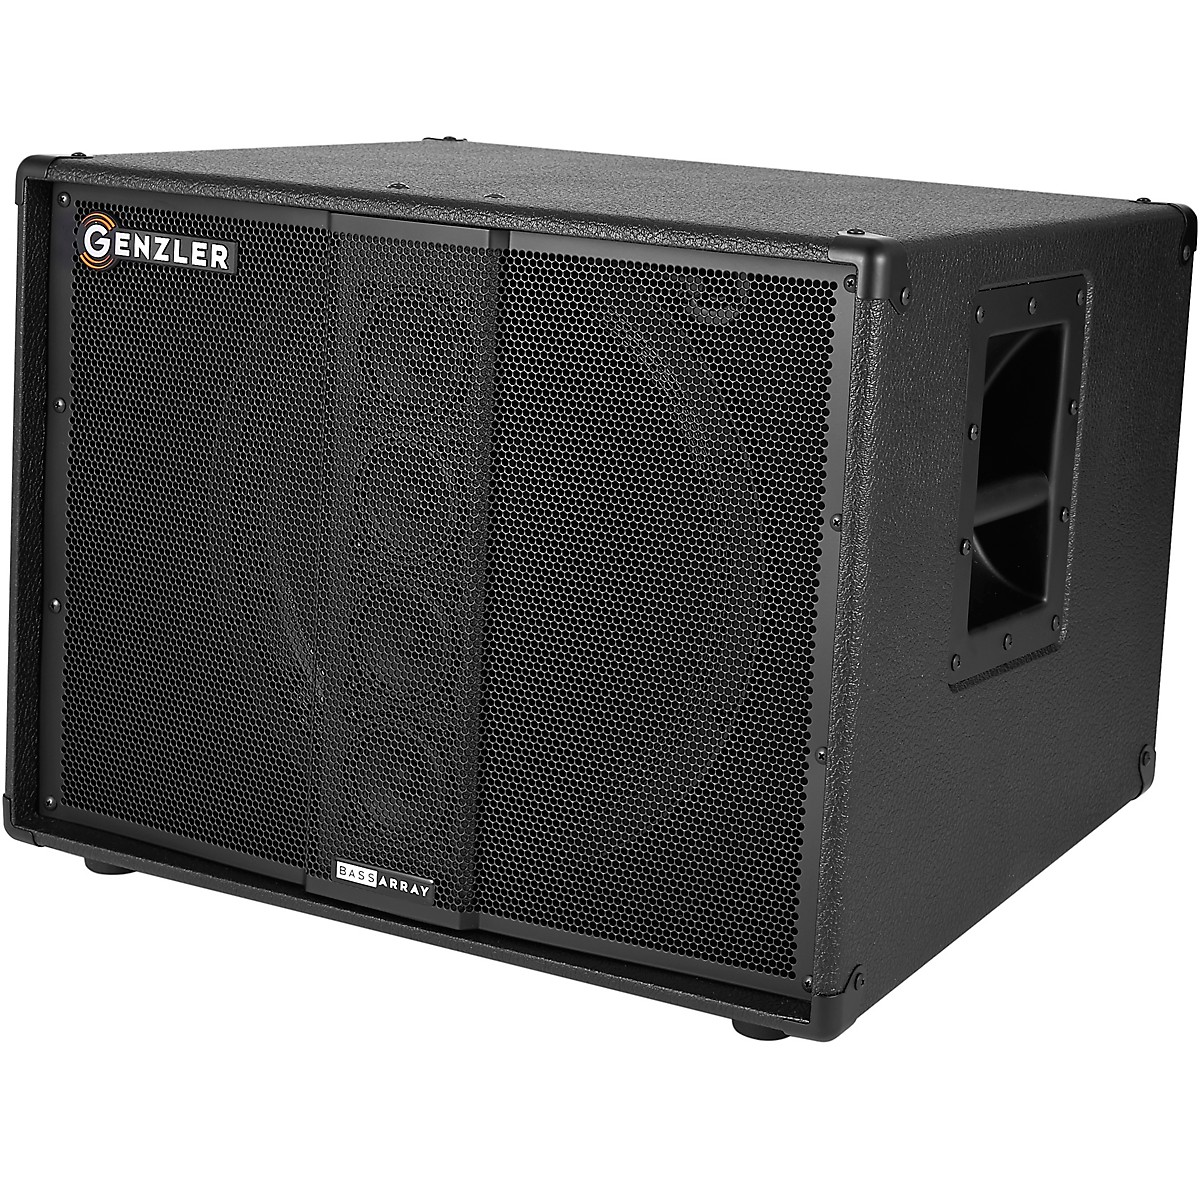 GENZLER AMPLIFICATION BA15-3 SLT Bass Array 400W 1x15